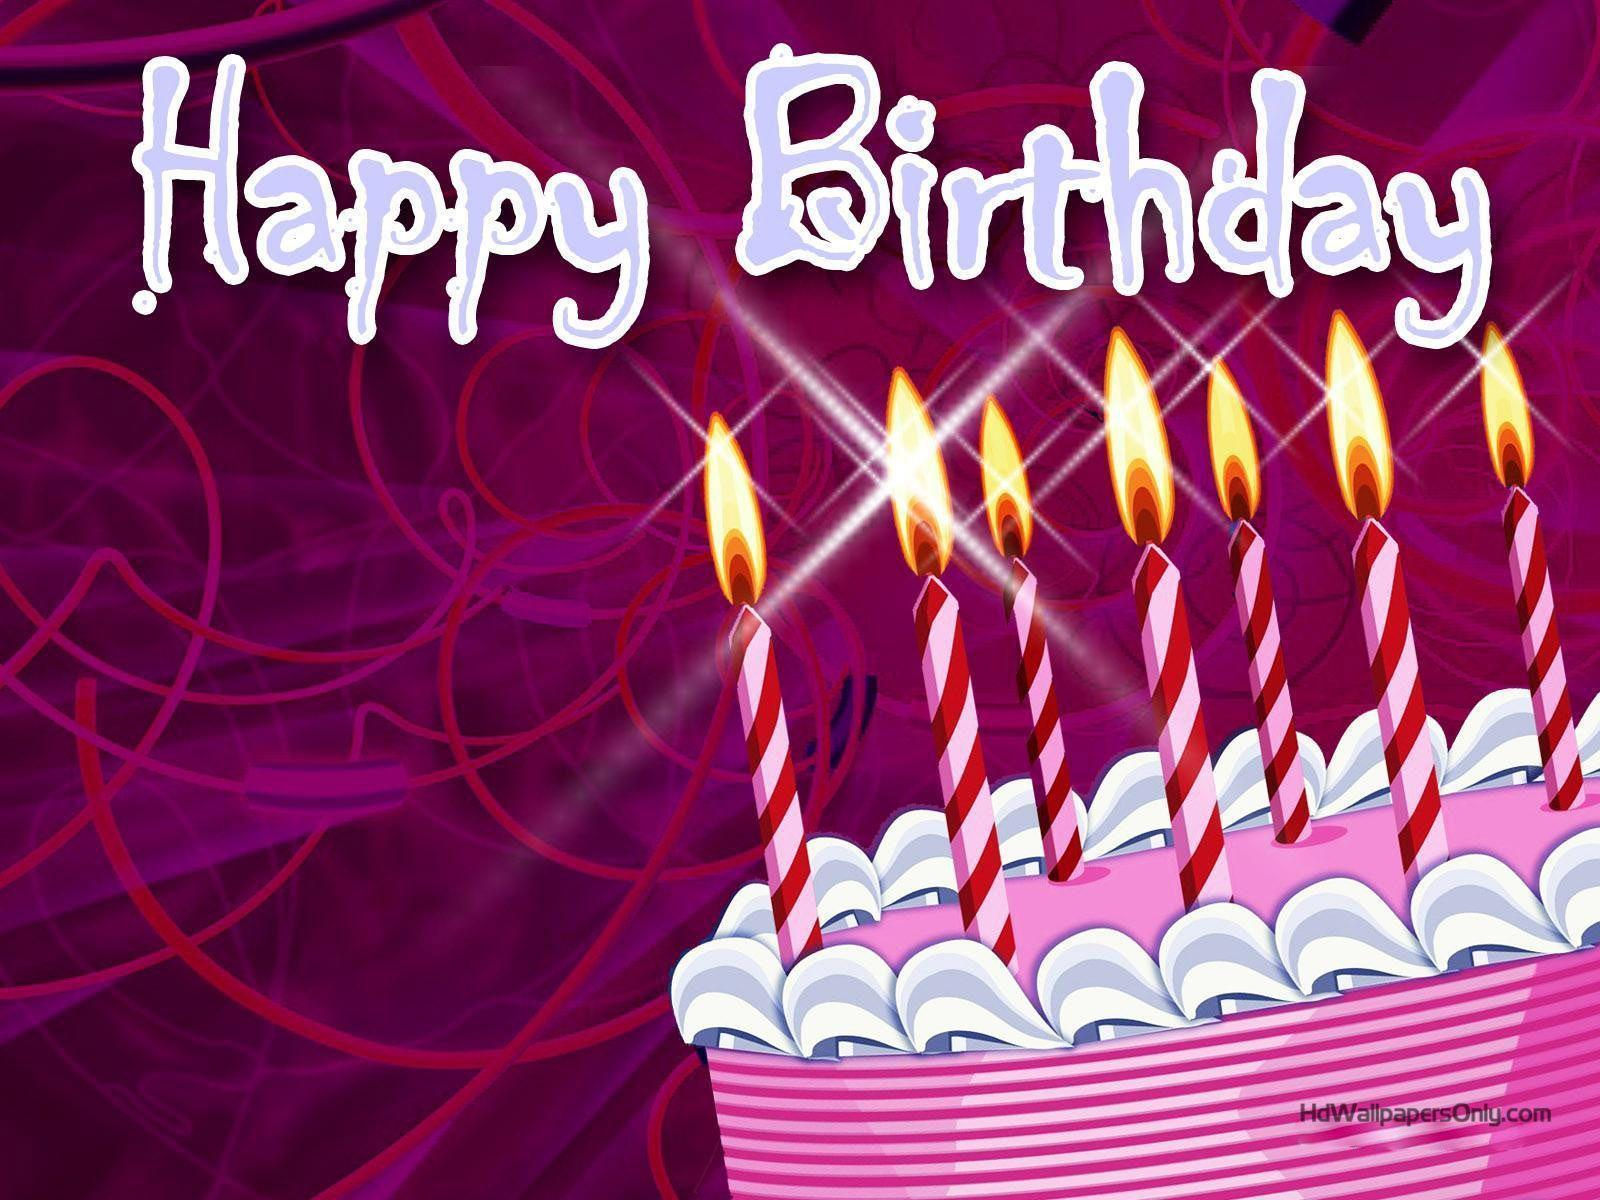 Free Wallpaper Birthday Love : Happy Birthday Wallpapers With Name - Wallpaper cave